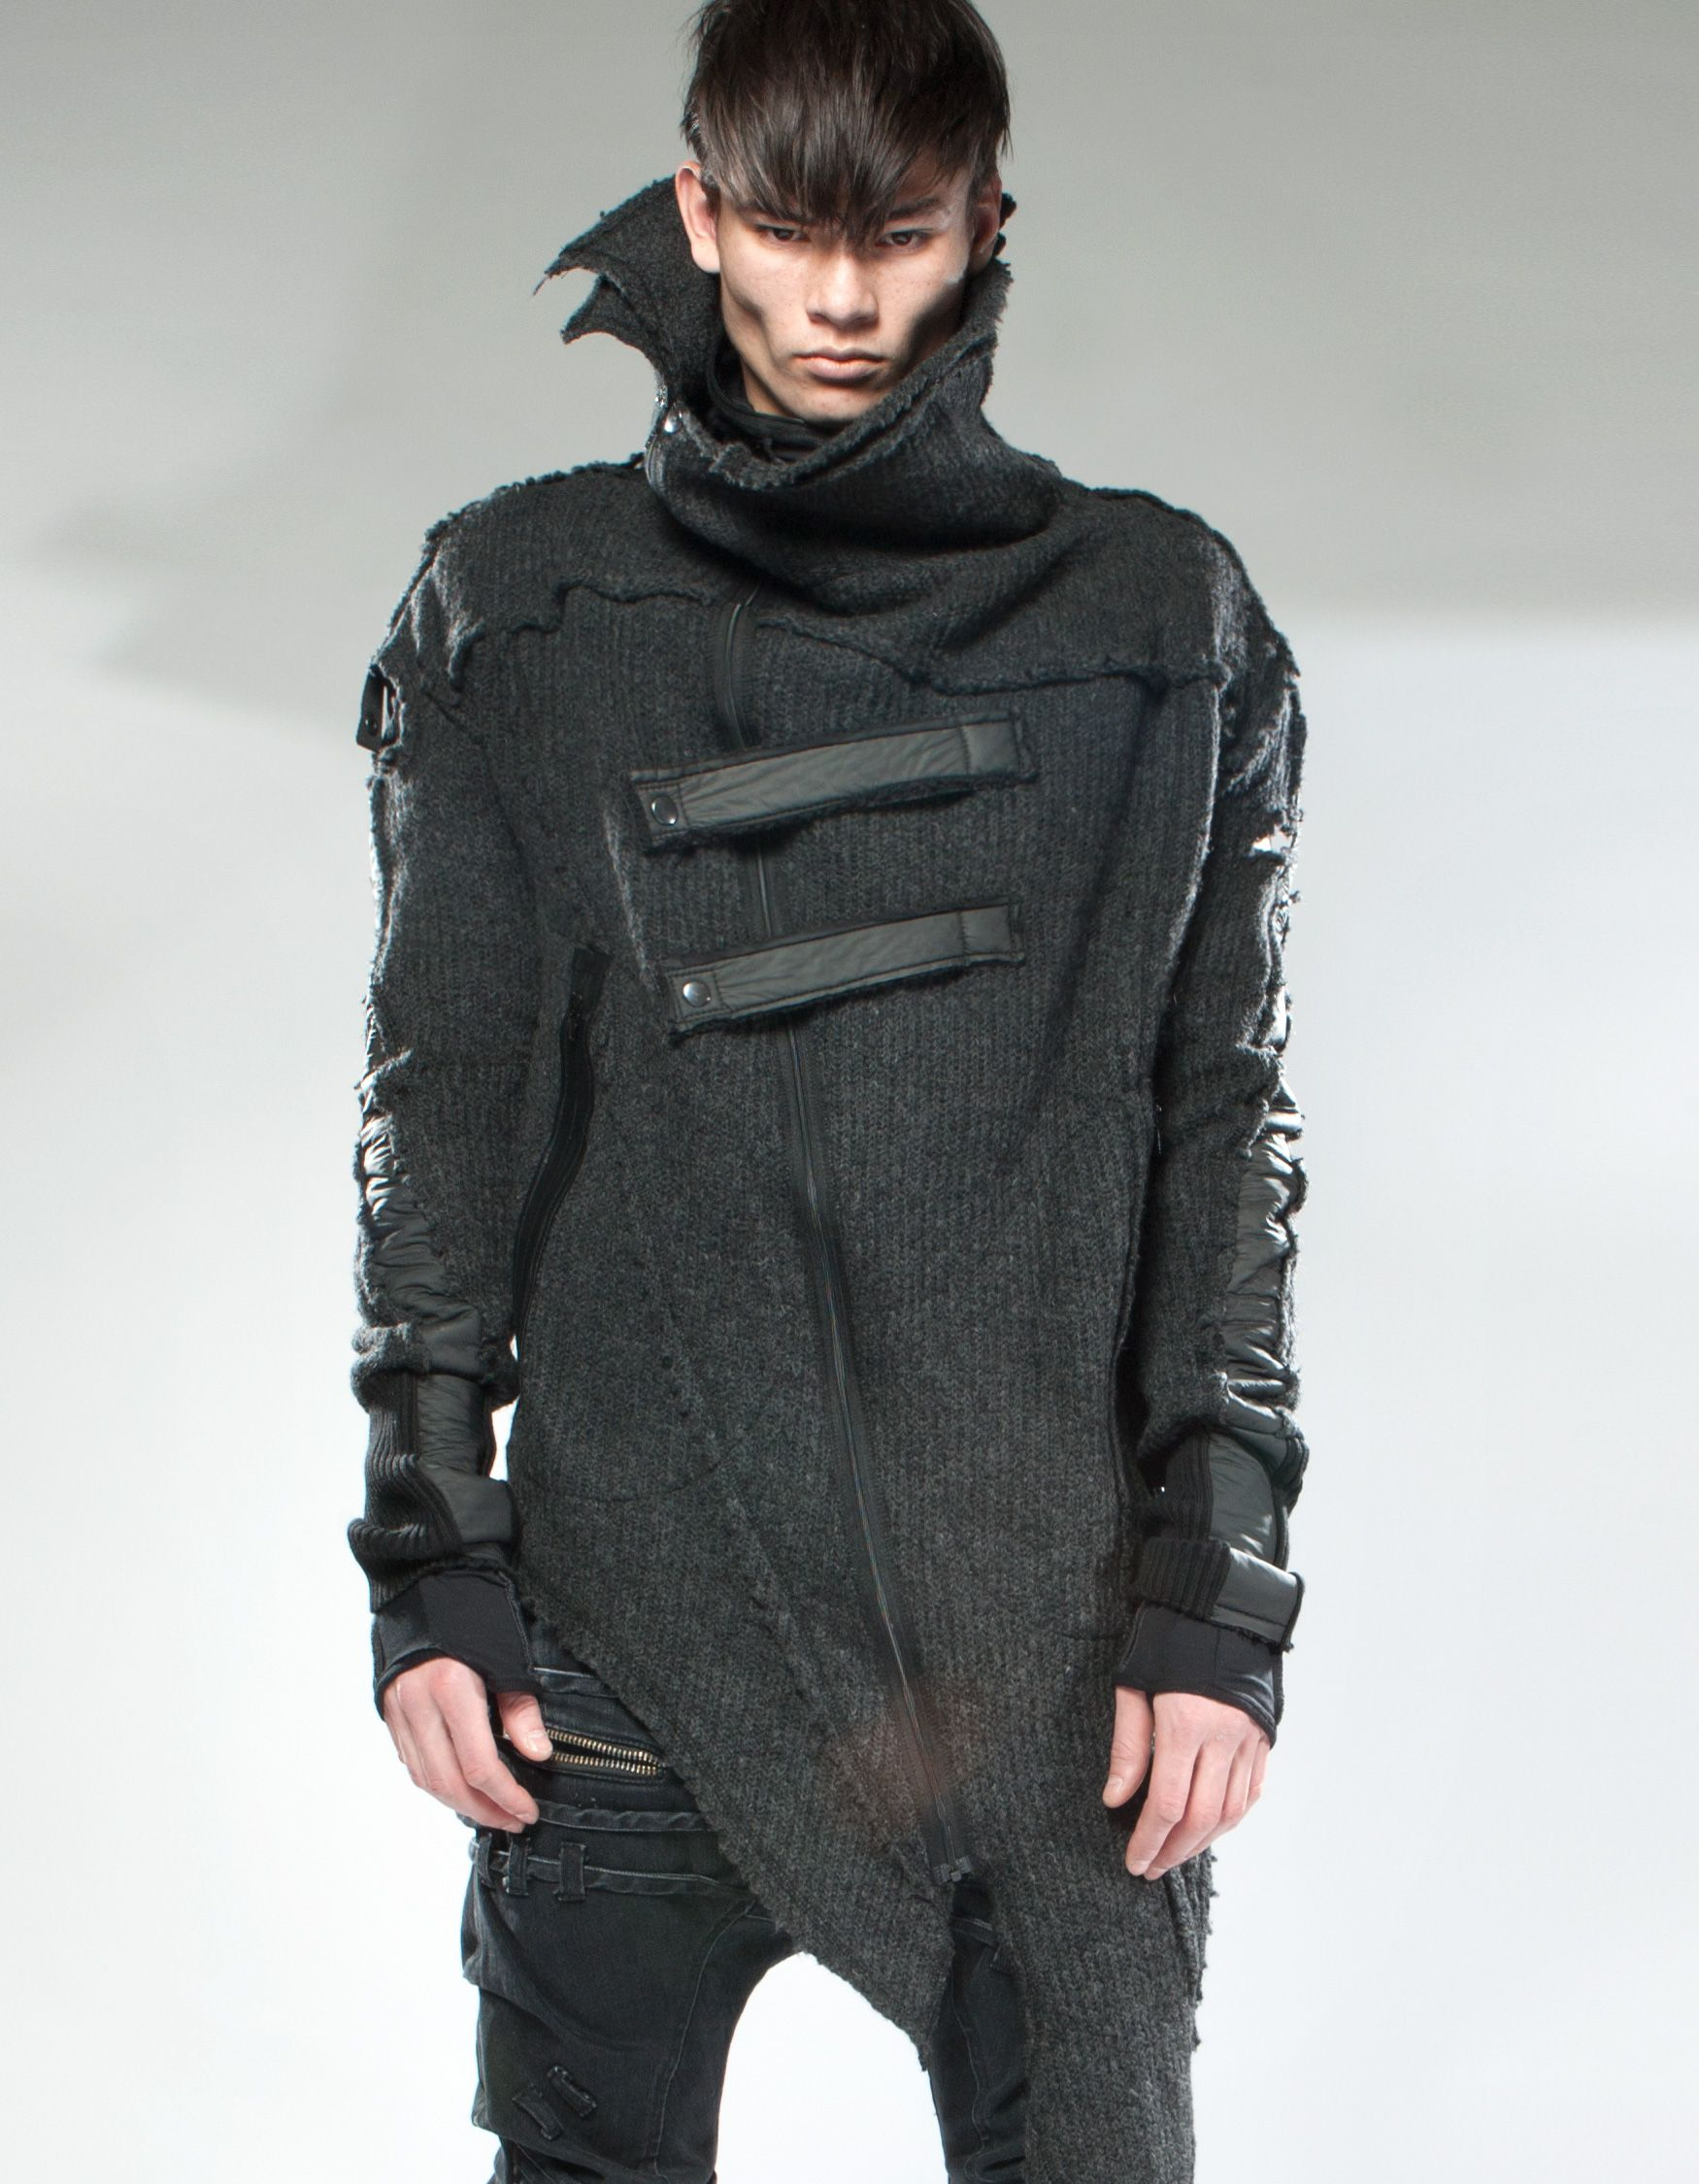 demobaza product  cyberpunk clothes mens fashion